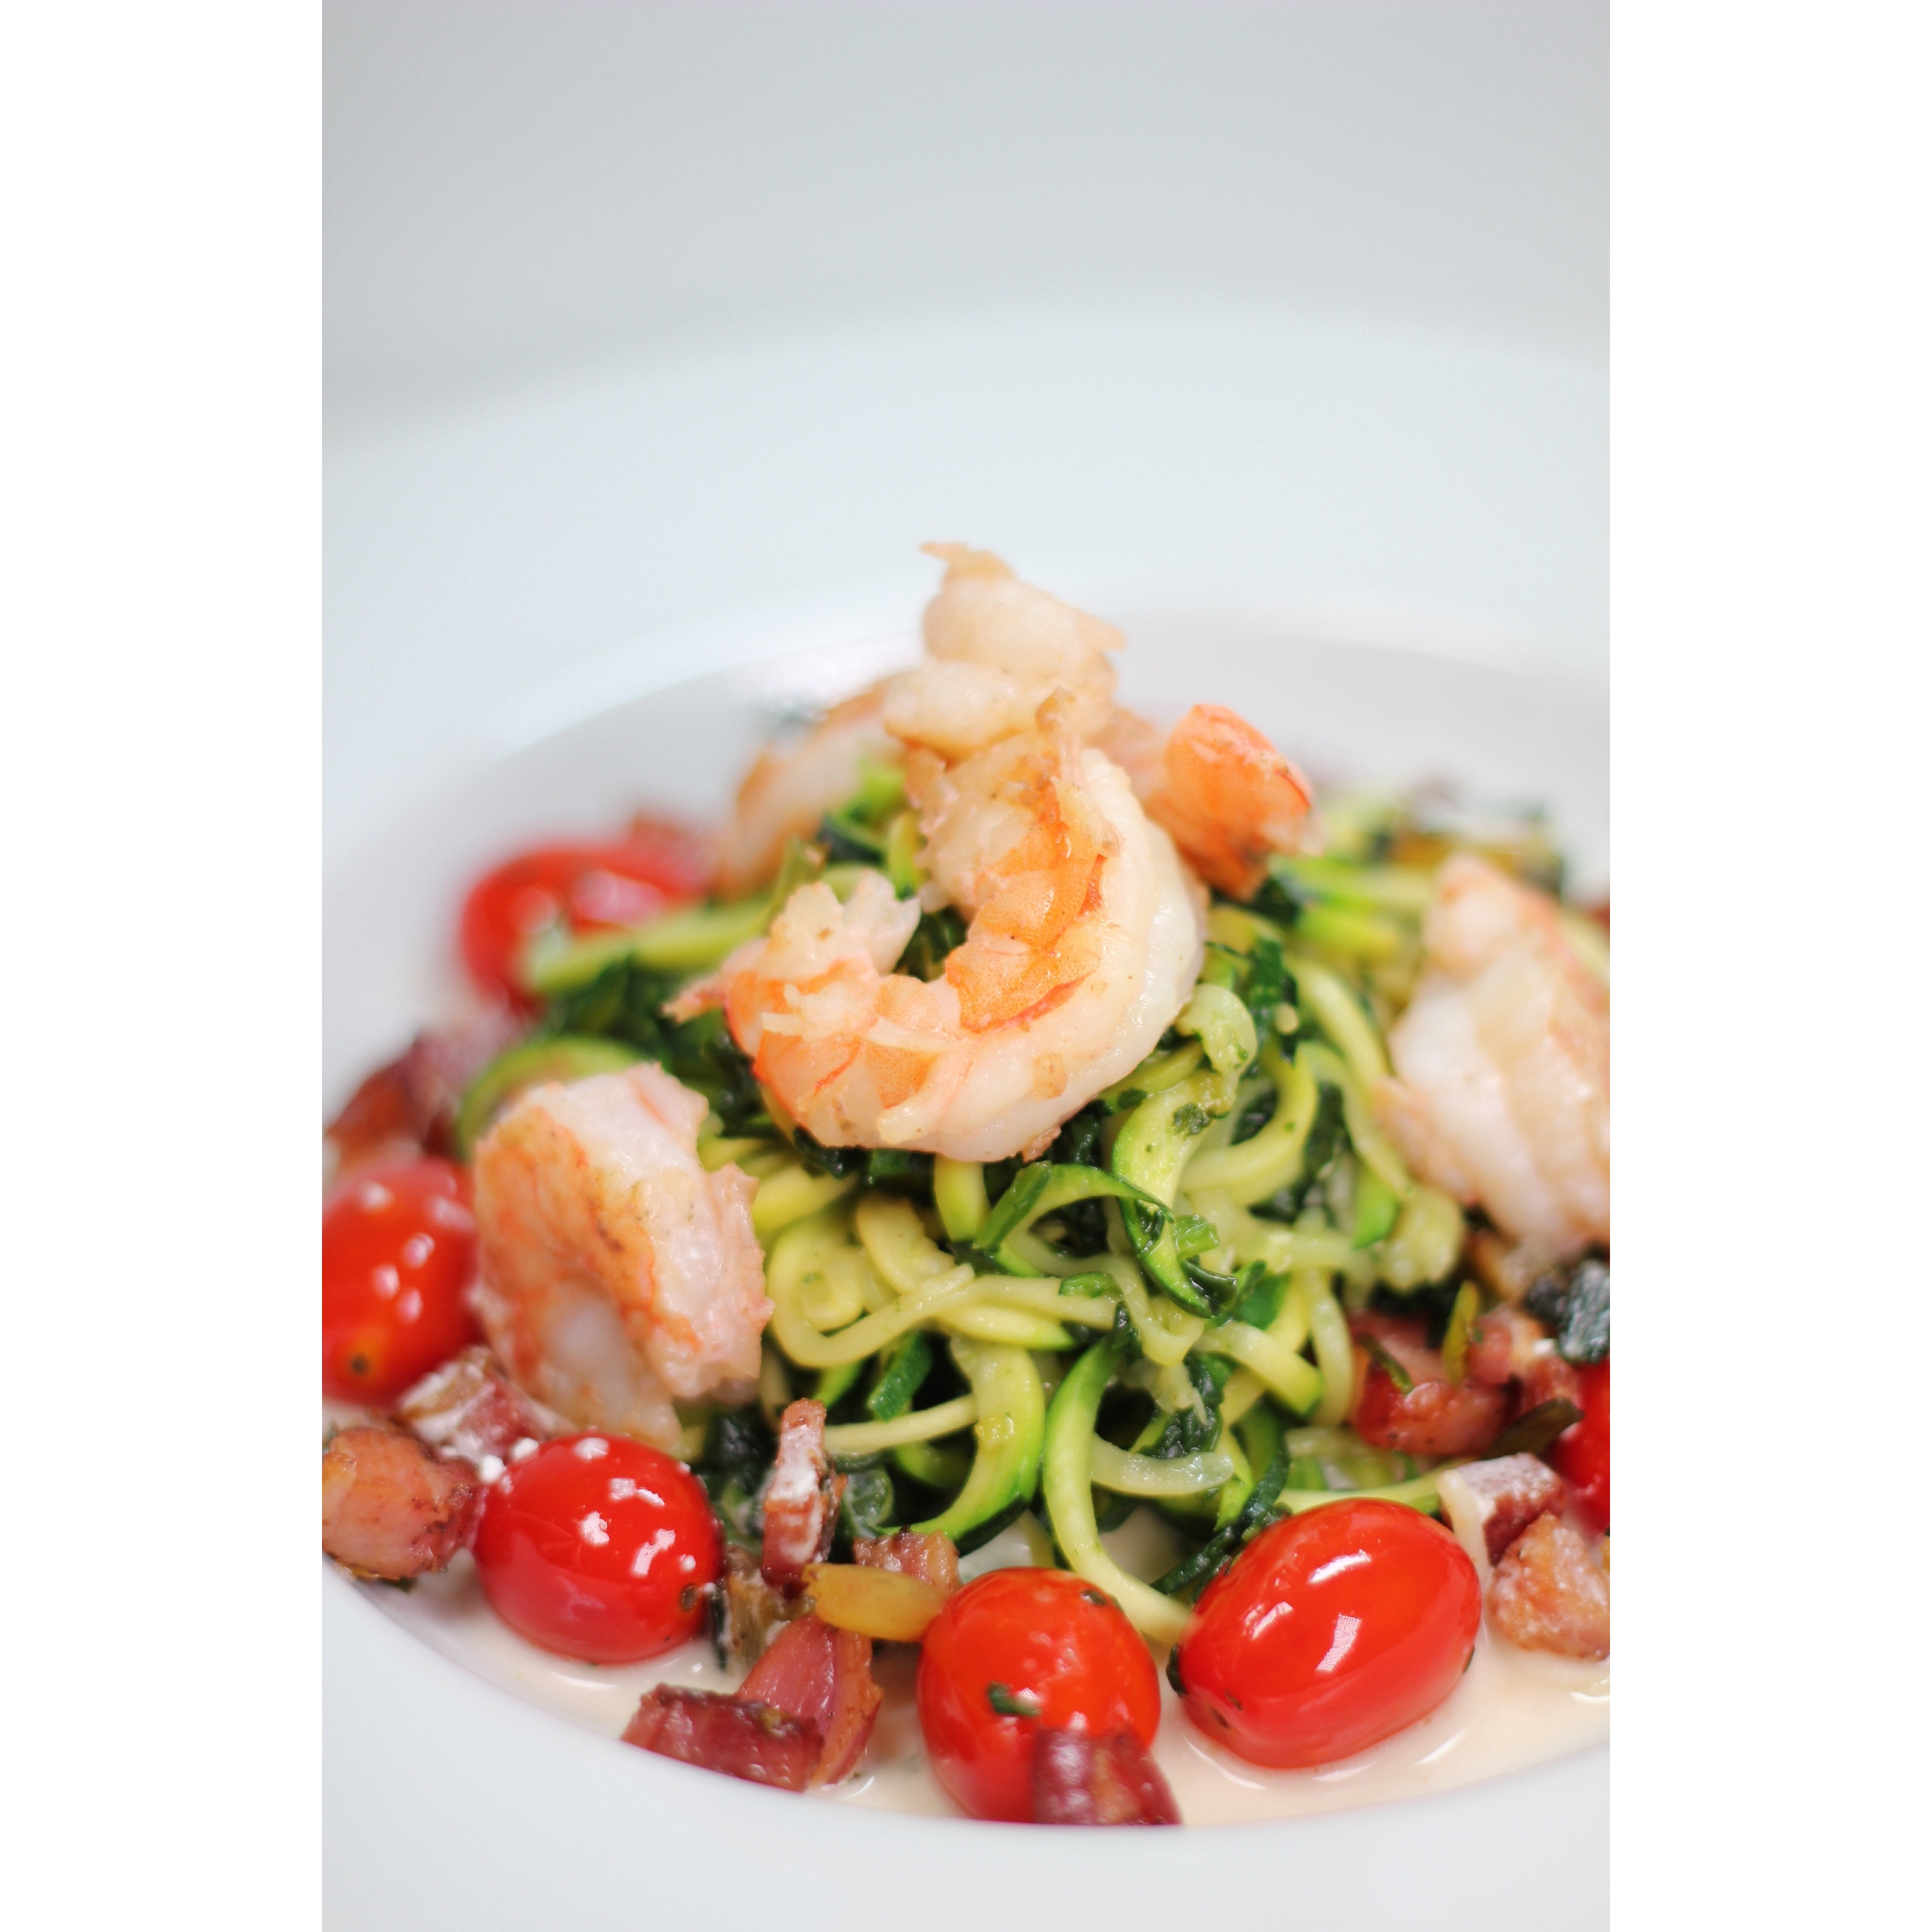 Pasta' with Shrimp, Pancetta, Cherry Tomato served on a Goat Cheese ...